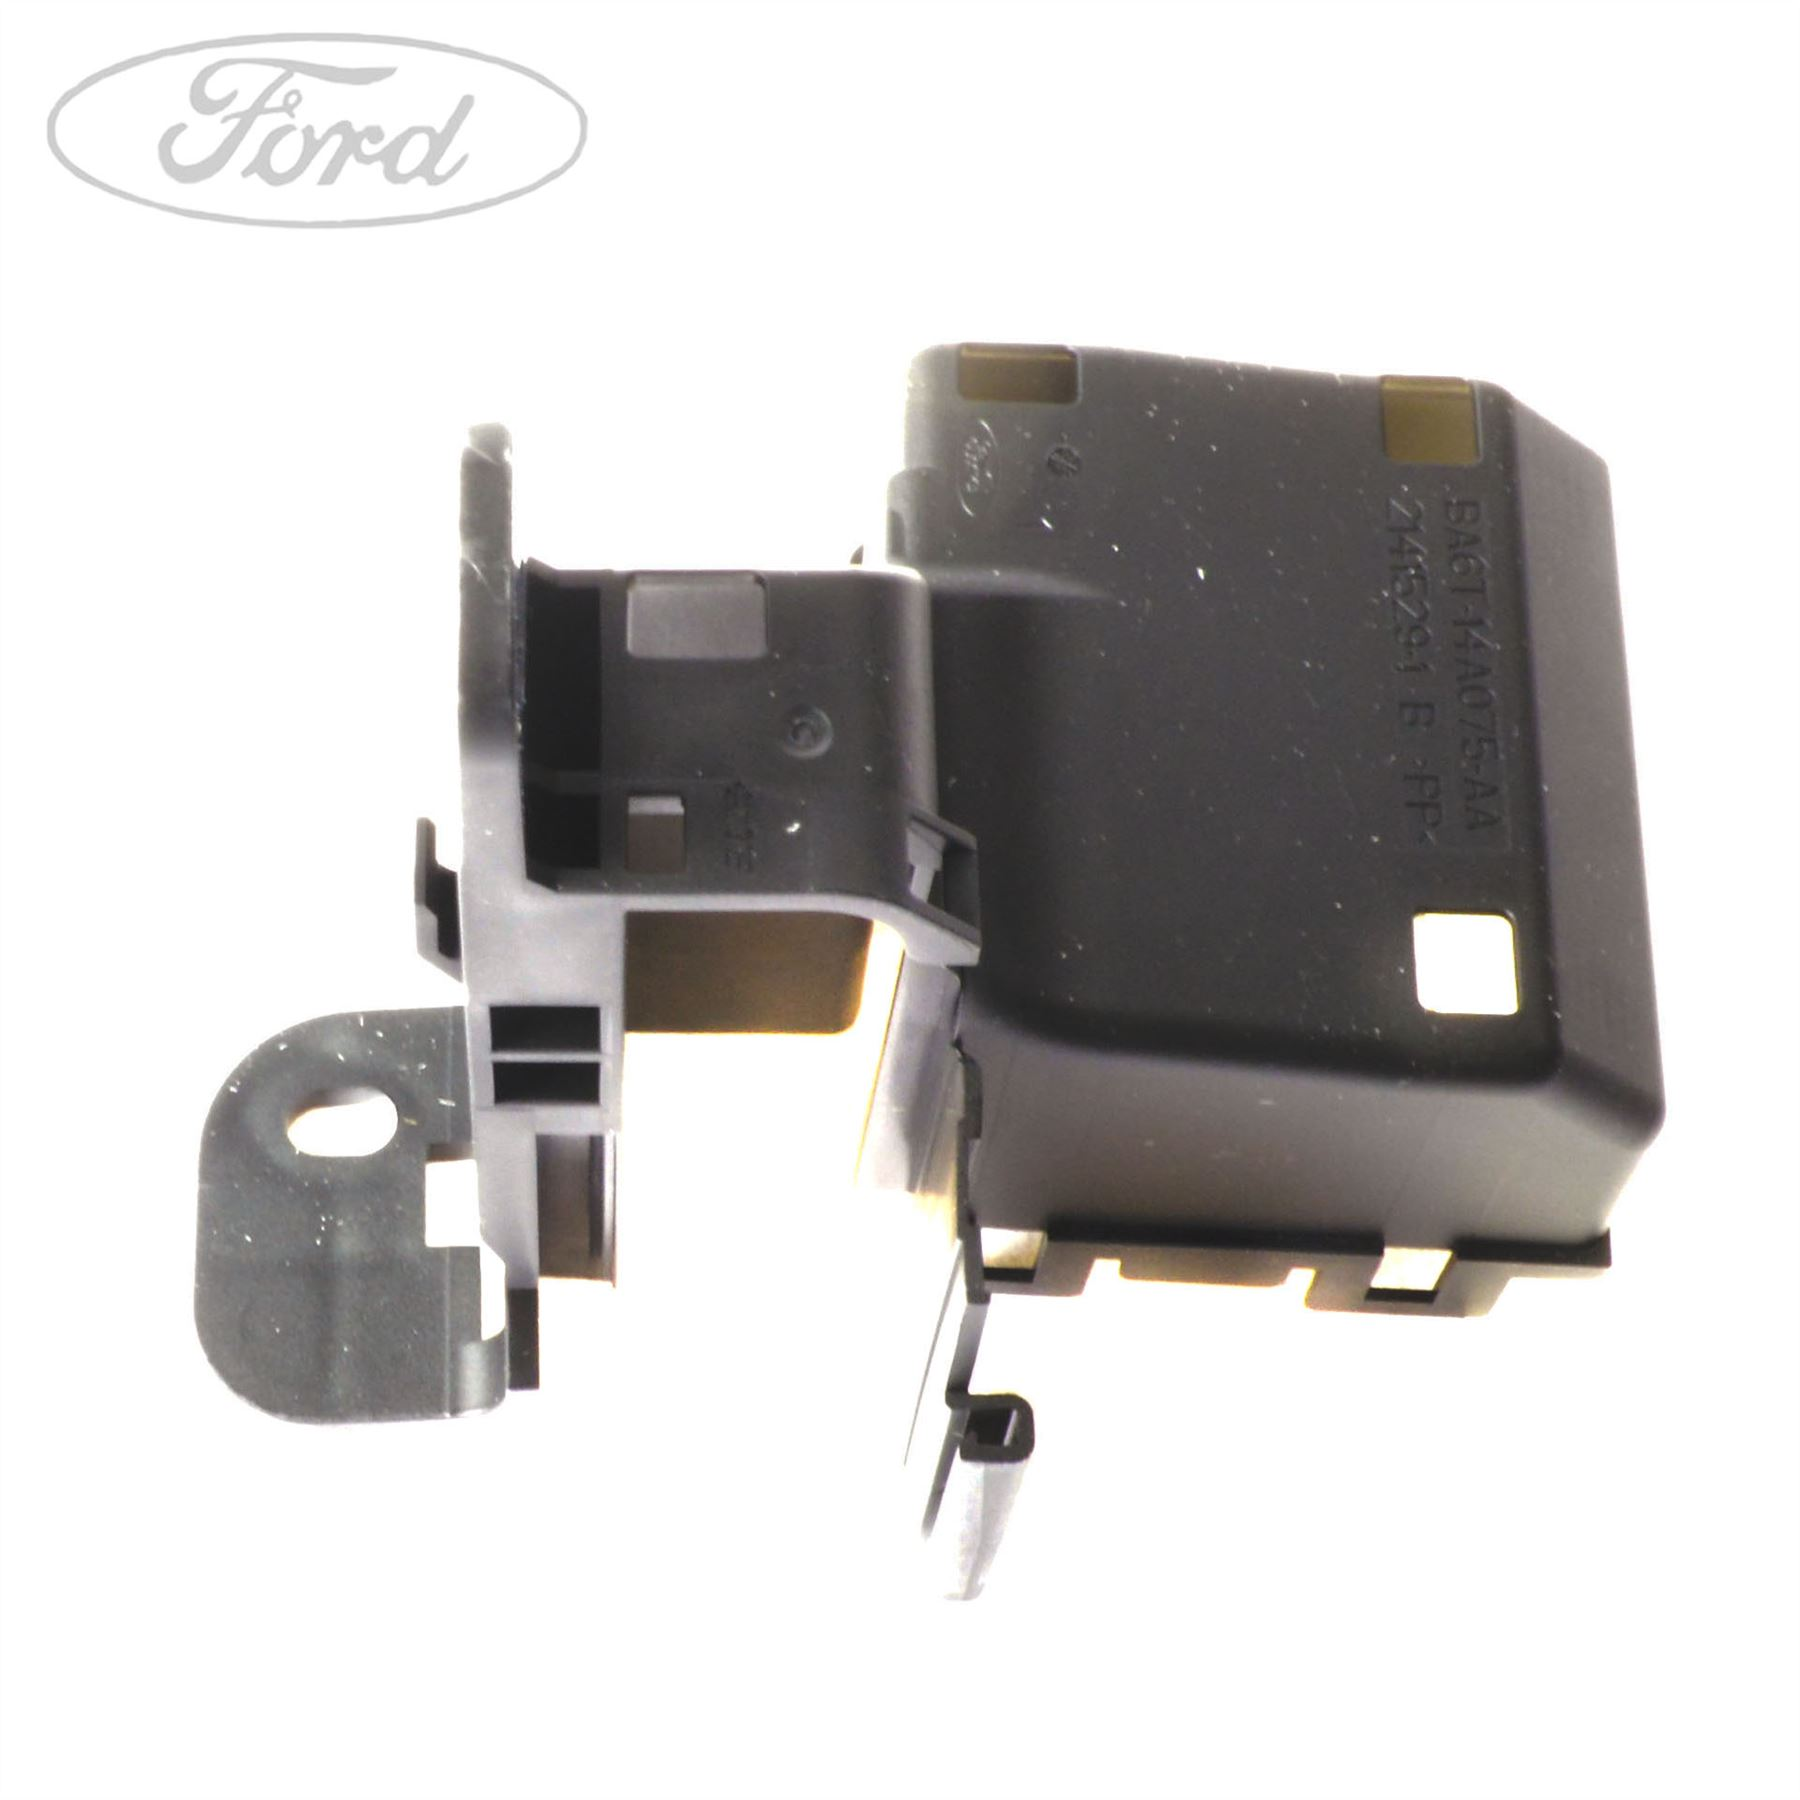 hight resolution of details about genuine ford fiesta mk7 fuse box cover 1857520